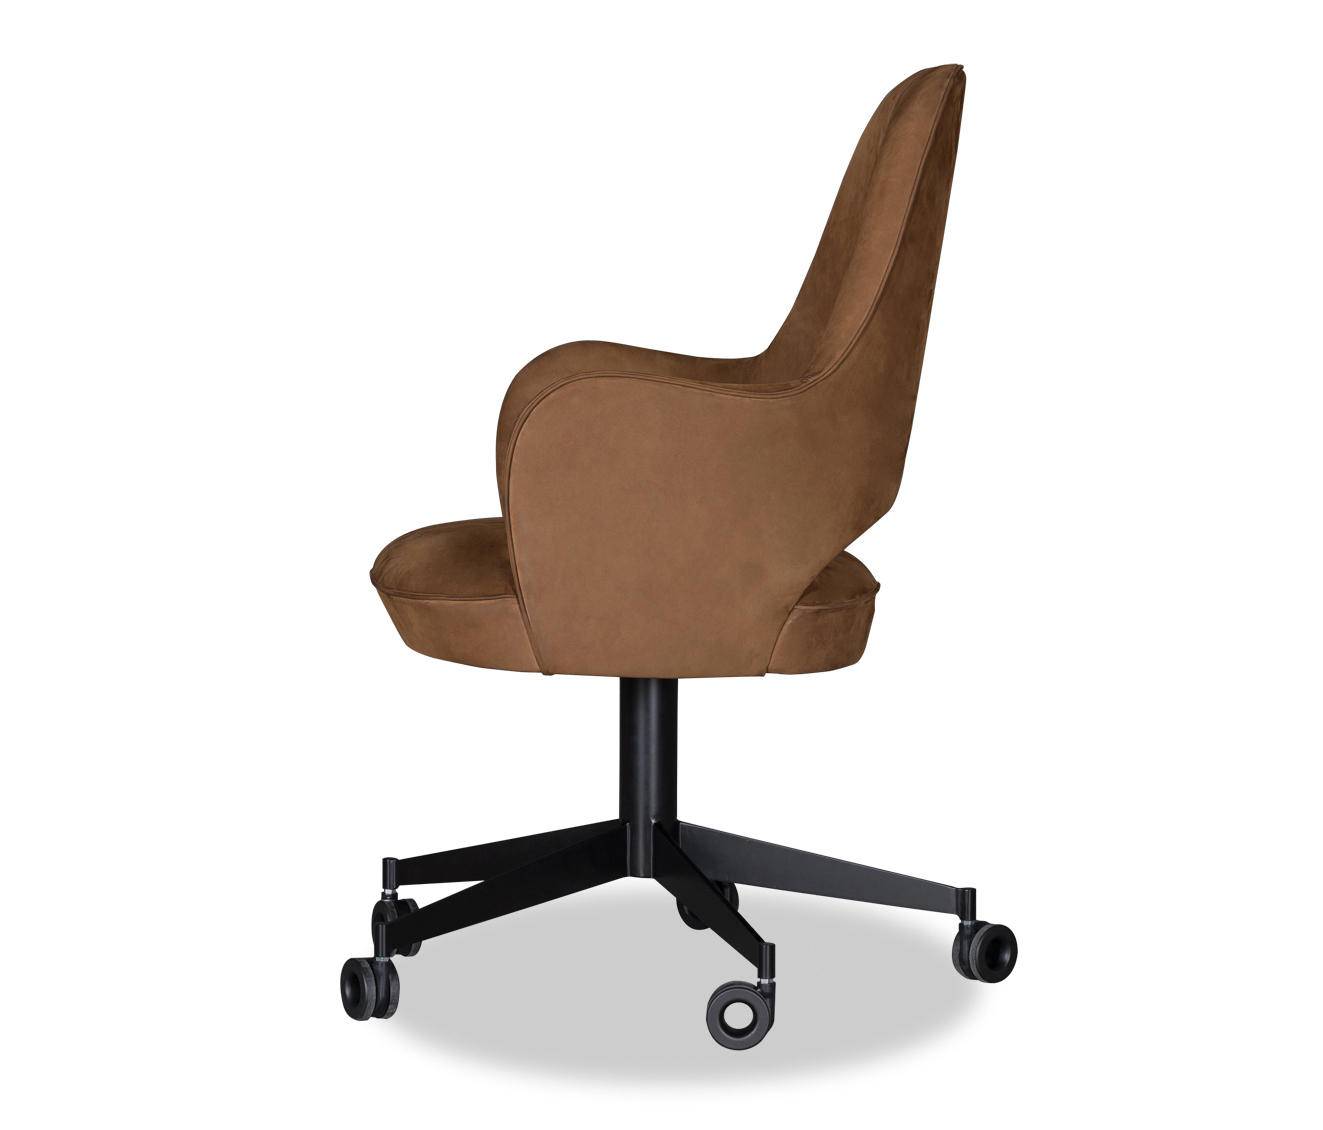 revolving chair for kitchen rocking dildo colette office chairs from baxter architonic by